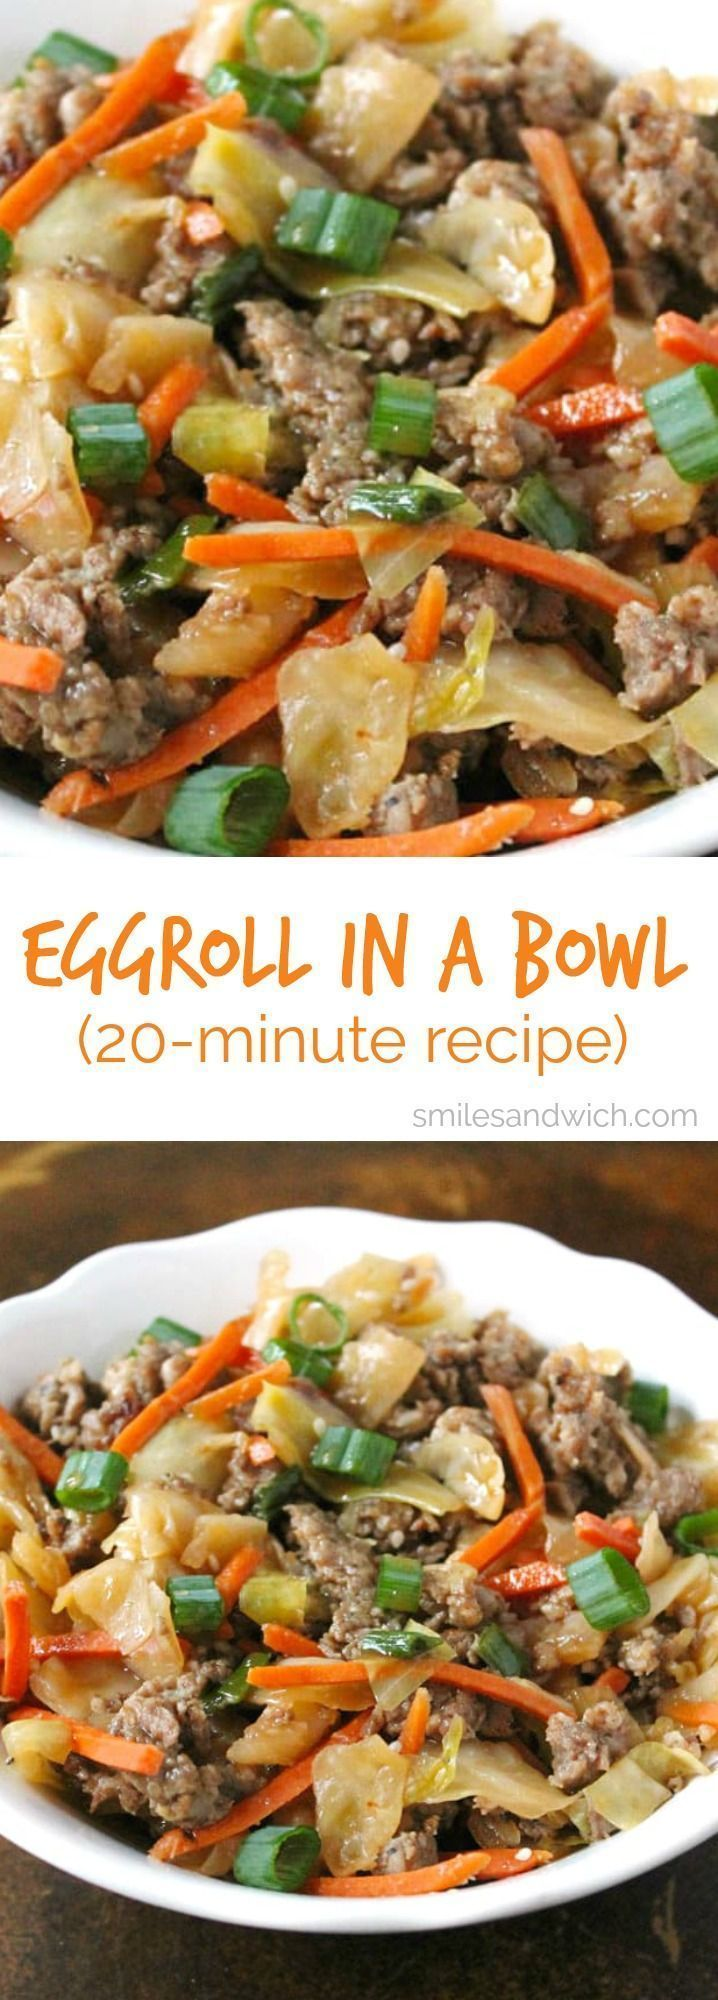 Egg Roll In A Bowl #eggrollinabowl